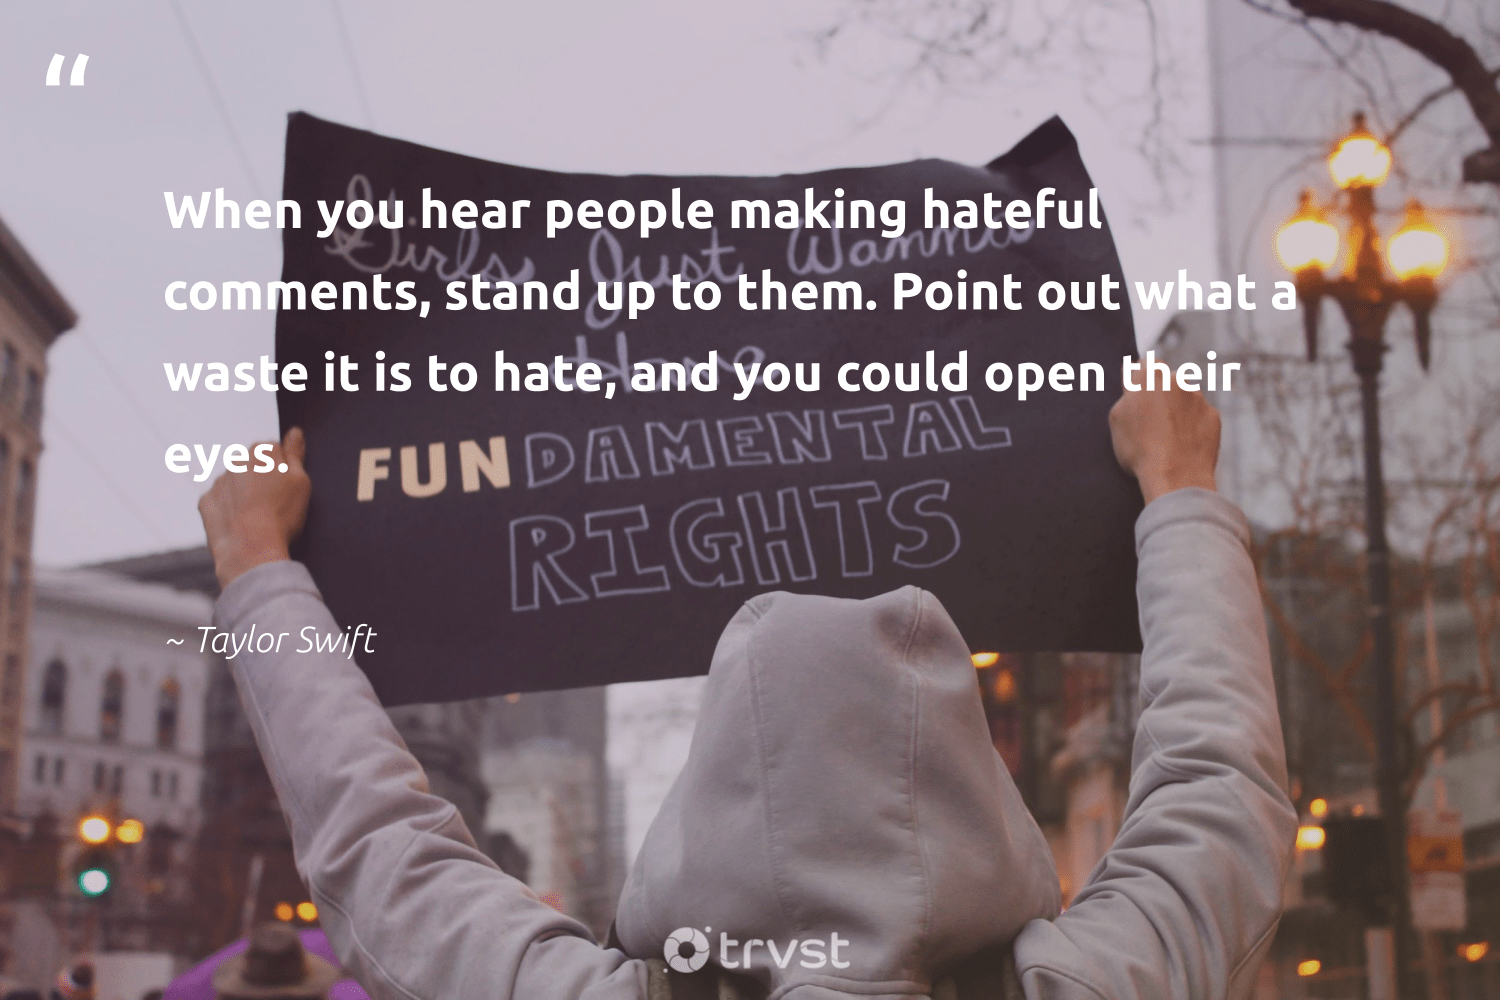 """When you hear people making hateful comments, stand up to them. Point out what a waste it is to hate, and you could open their eyes.""  - Taylor Swift #trvst #quotes #waste #makeadifference #dotherightthing #socialchange #planetearthfirst #giveback #bethechange #socialgood #collectiveaction #weareallone"